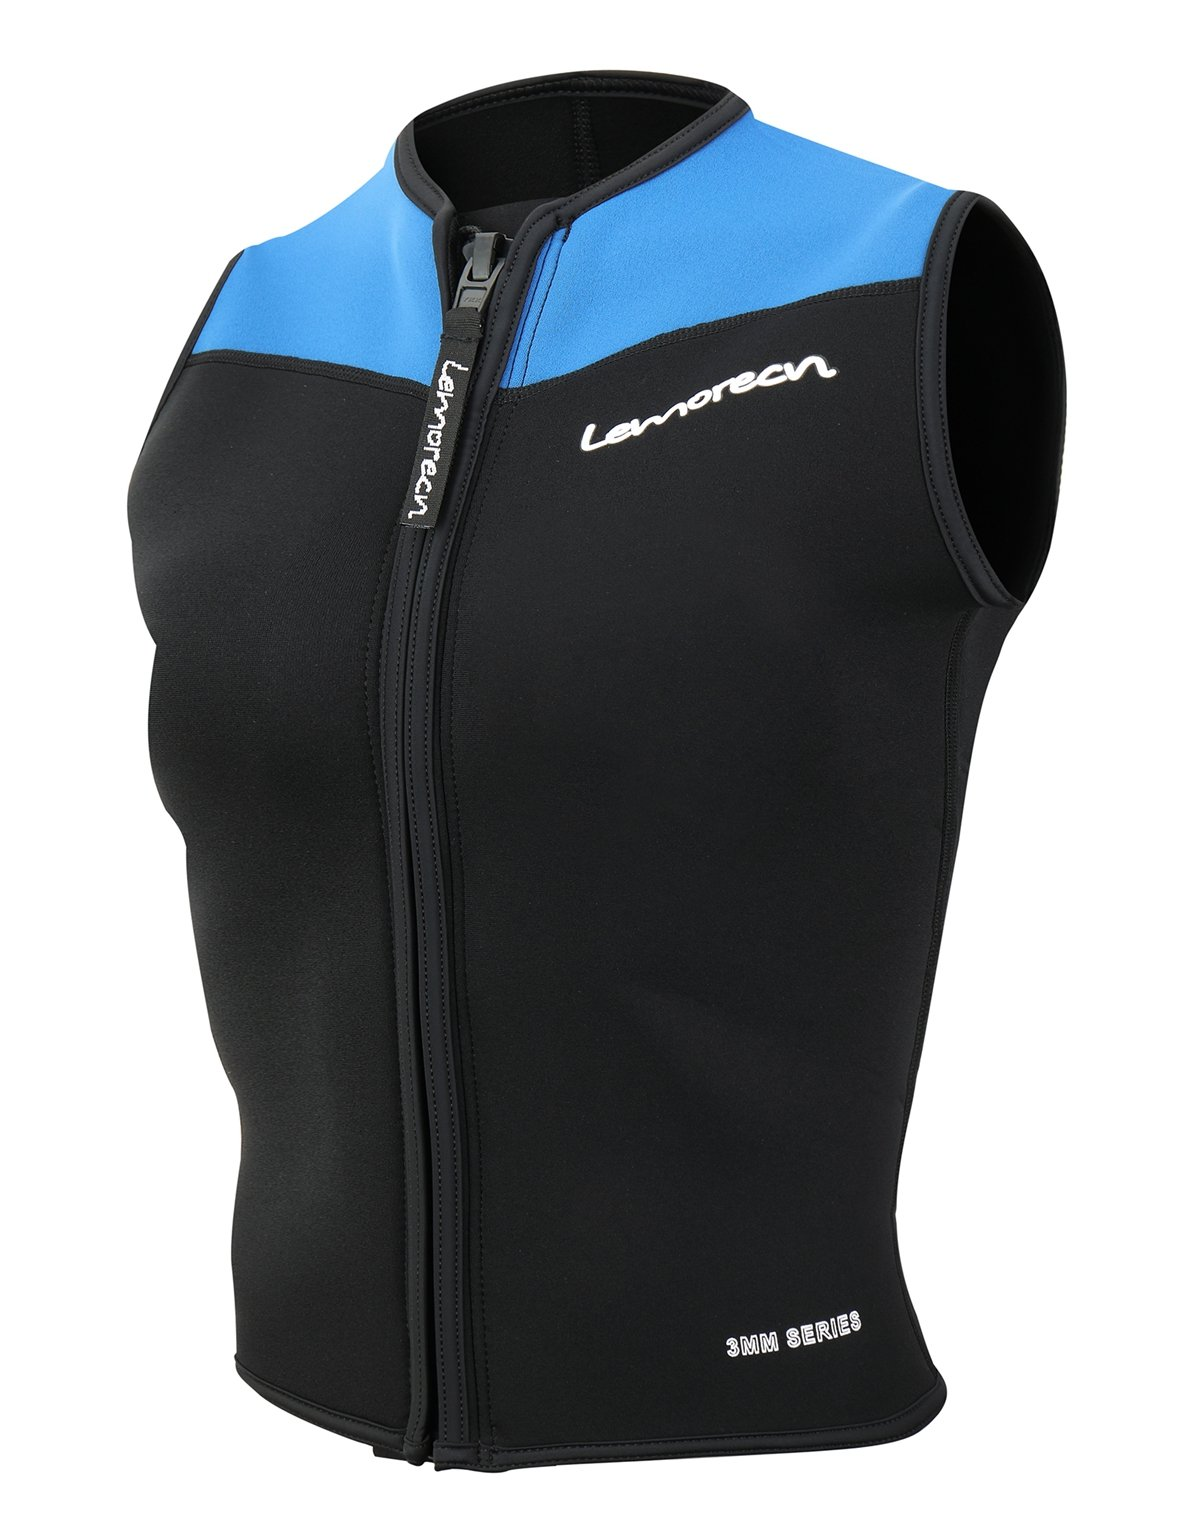 Lemorecn Wetsuits Top Premium Neoprene 3mm Zipper Diving Vest (2095blueM) by Lemorecn